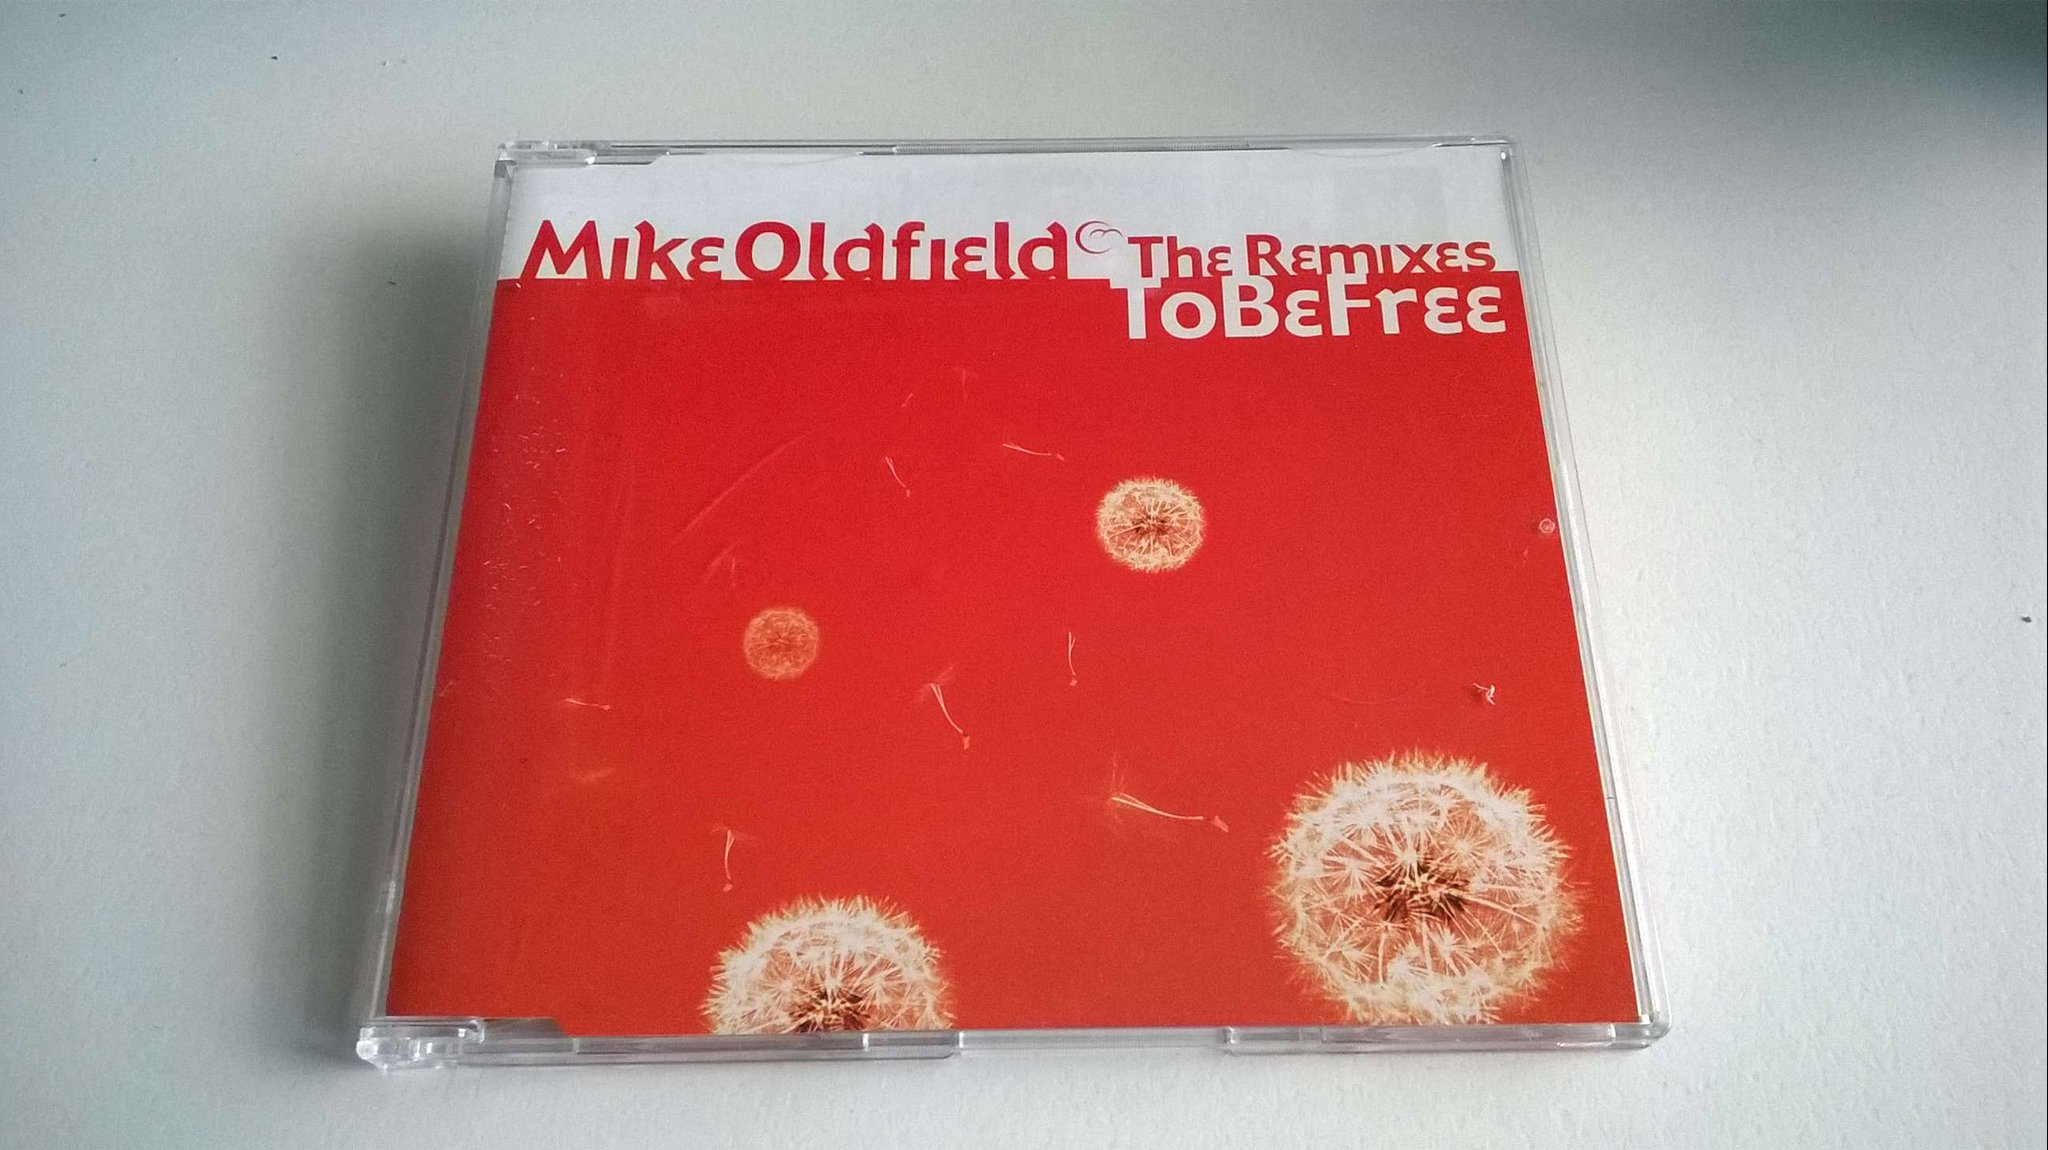 Mike Oldfield - To Be Free, The Remixes, CD, Promo